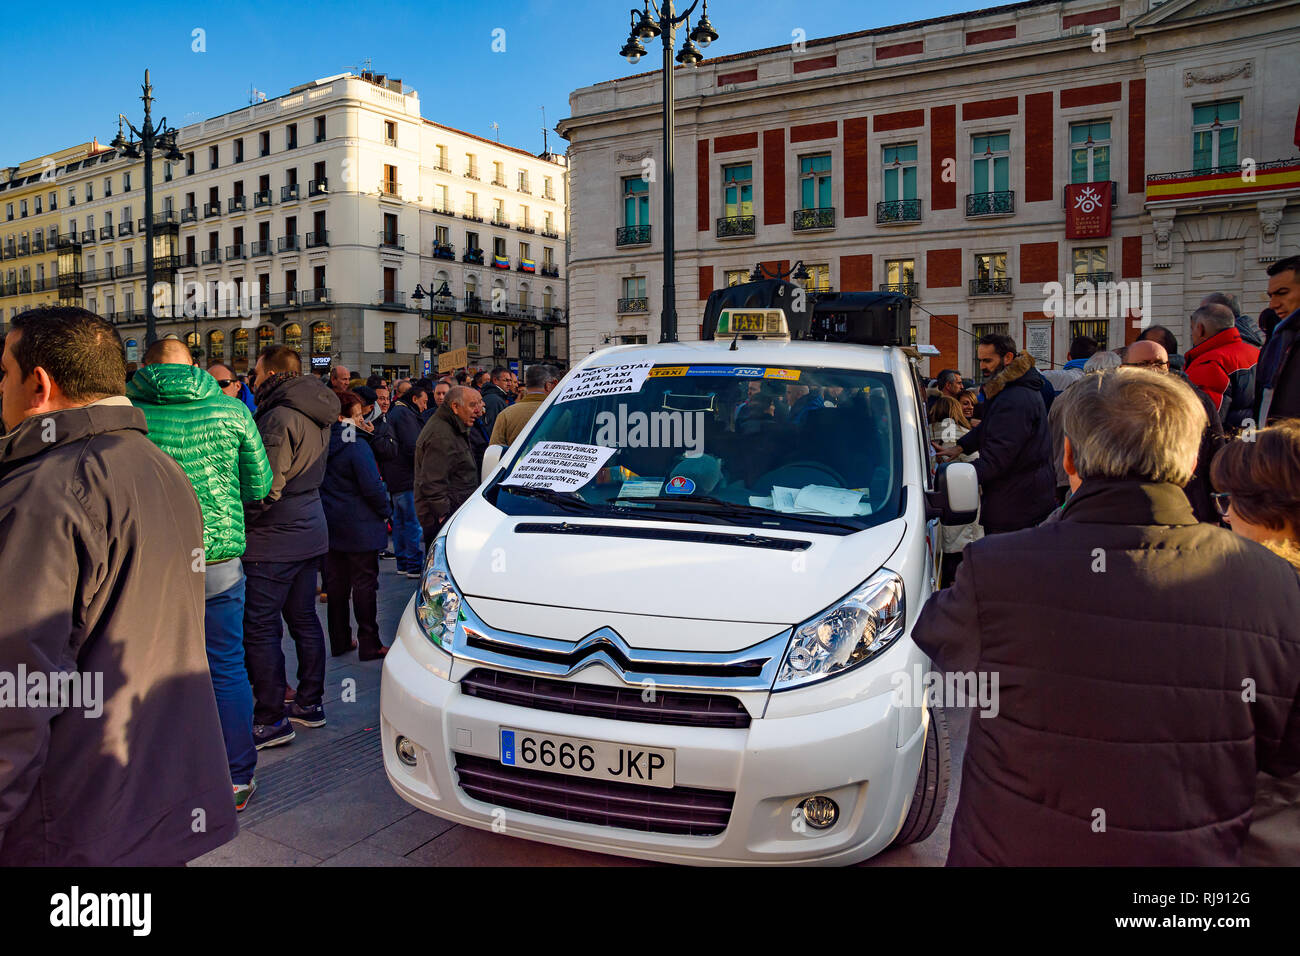 Spain. 4th Feb, 2019. Hundreds of taxi drivers gather  in Madrid. They have made a strike against the companies Uber and Cabify Stock Photo